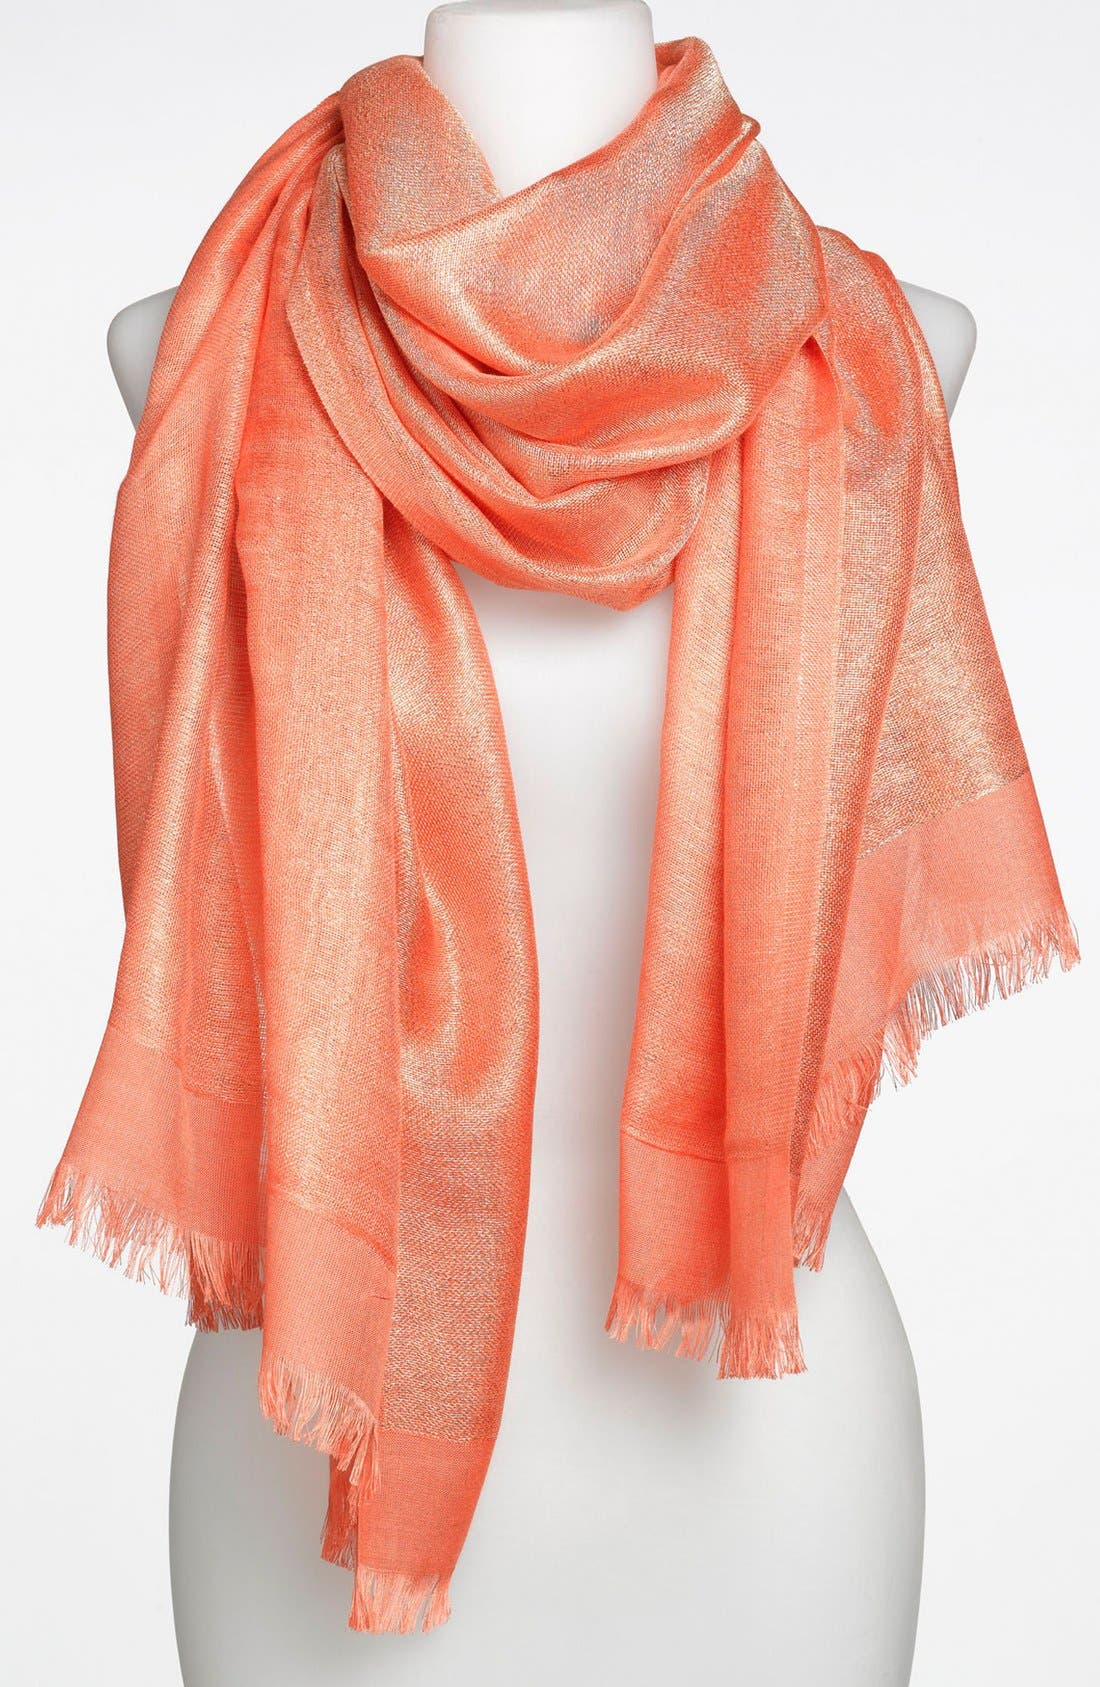 Main Image - Accessory Street 'Shine' Scarf